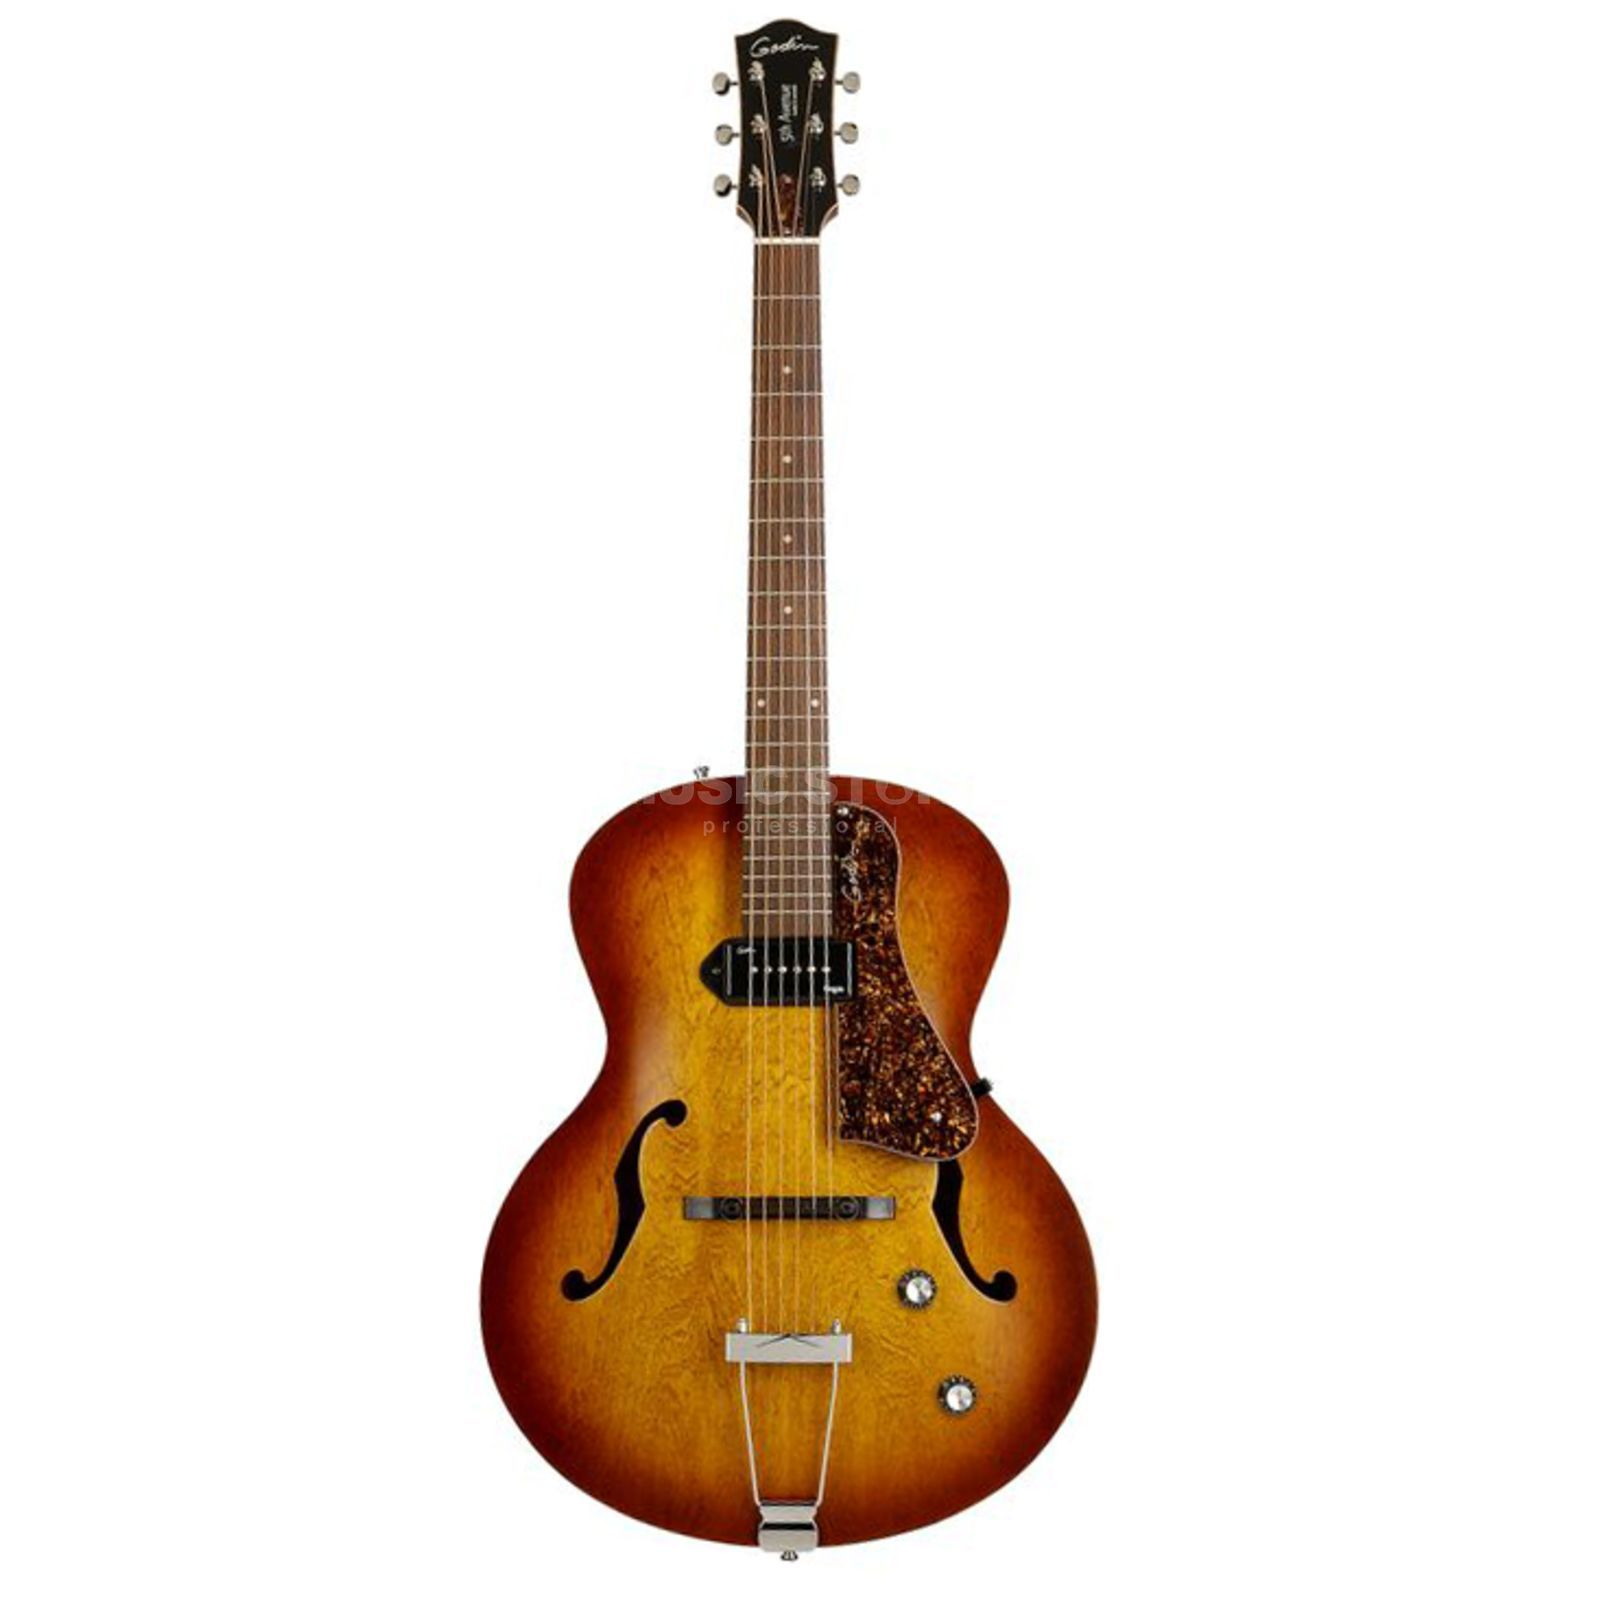 Godin 5th Avenue Kingpin Semi Acoust ic Guitar, Cognac Burst   Produktbillede